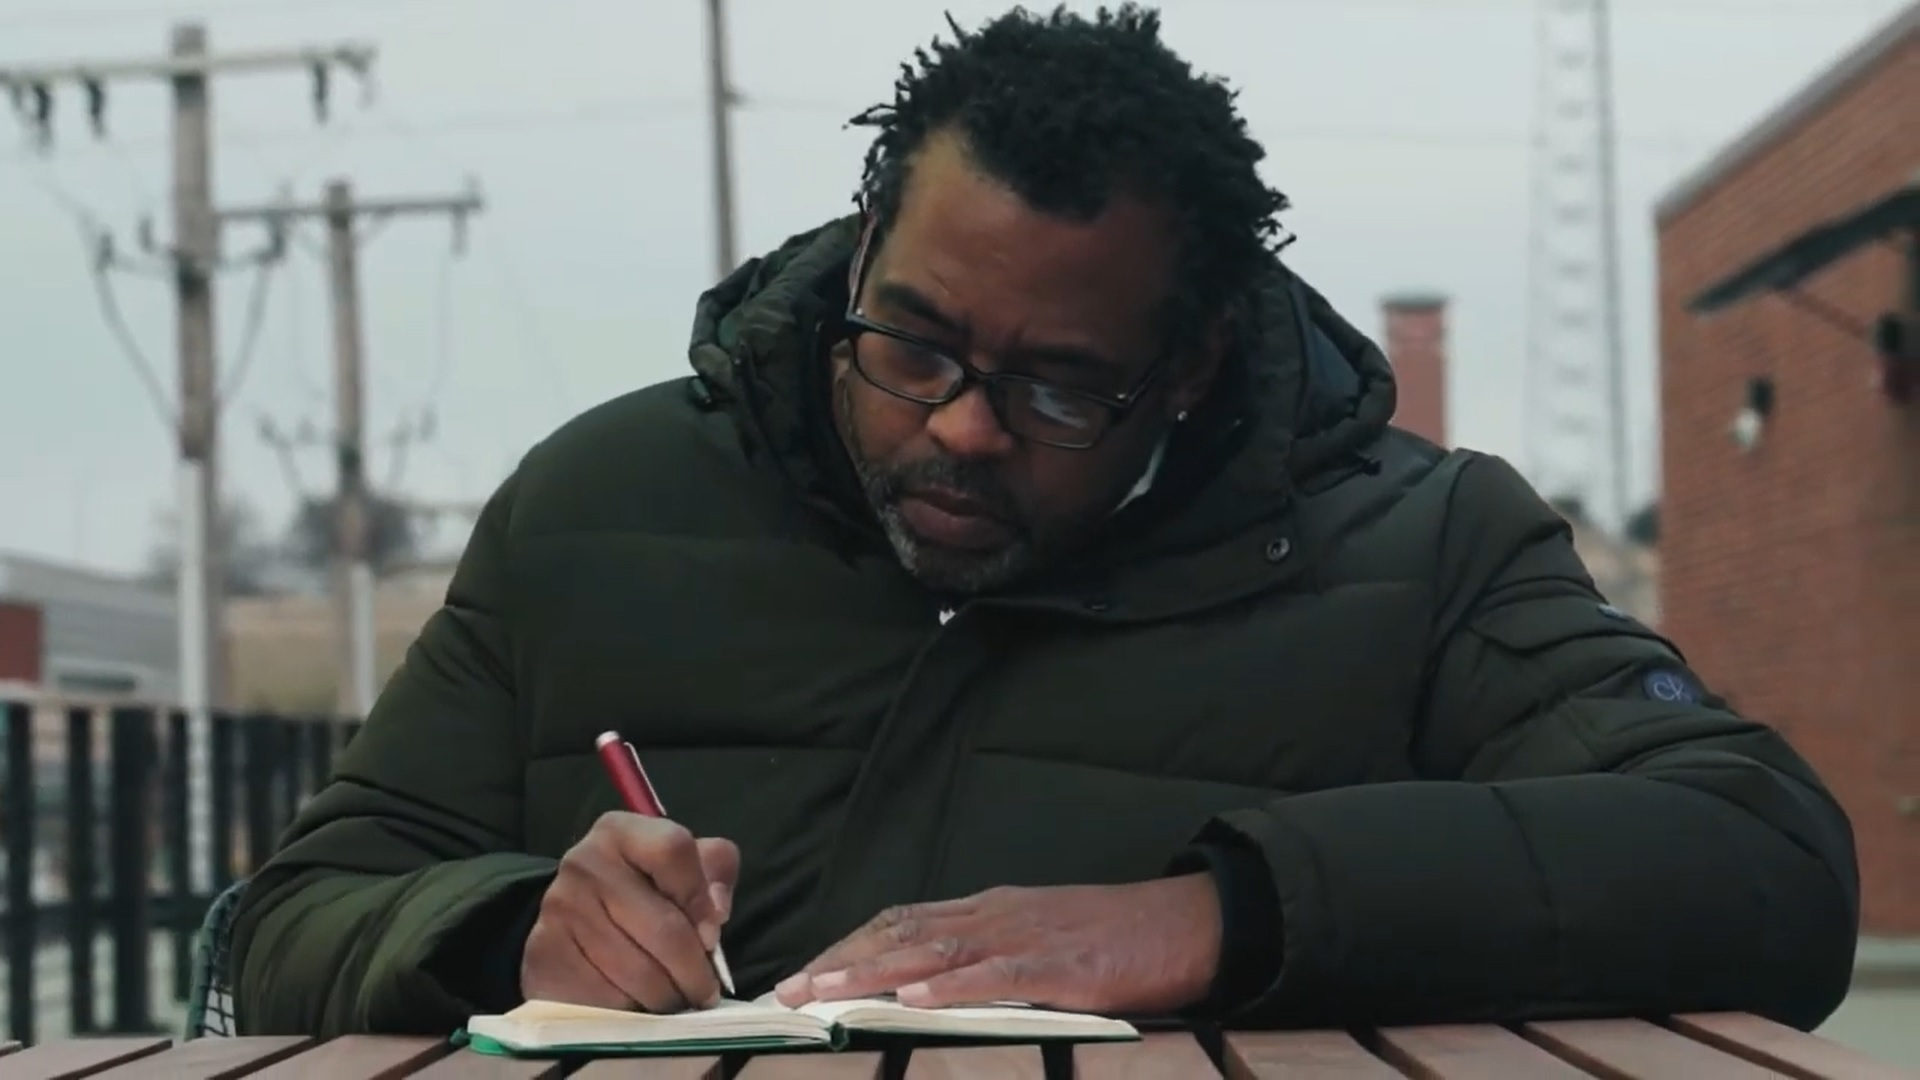 A person in a winter coat and glasses writes in a notebook while sitting at a table outdoors